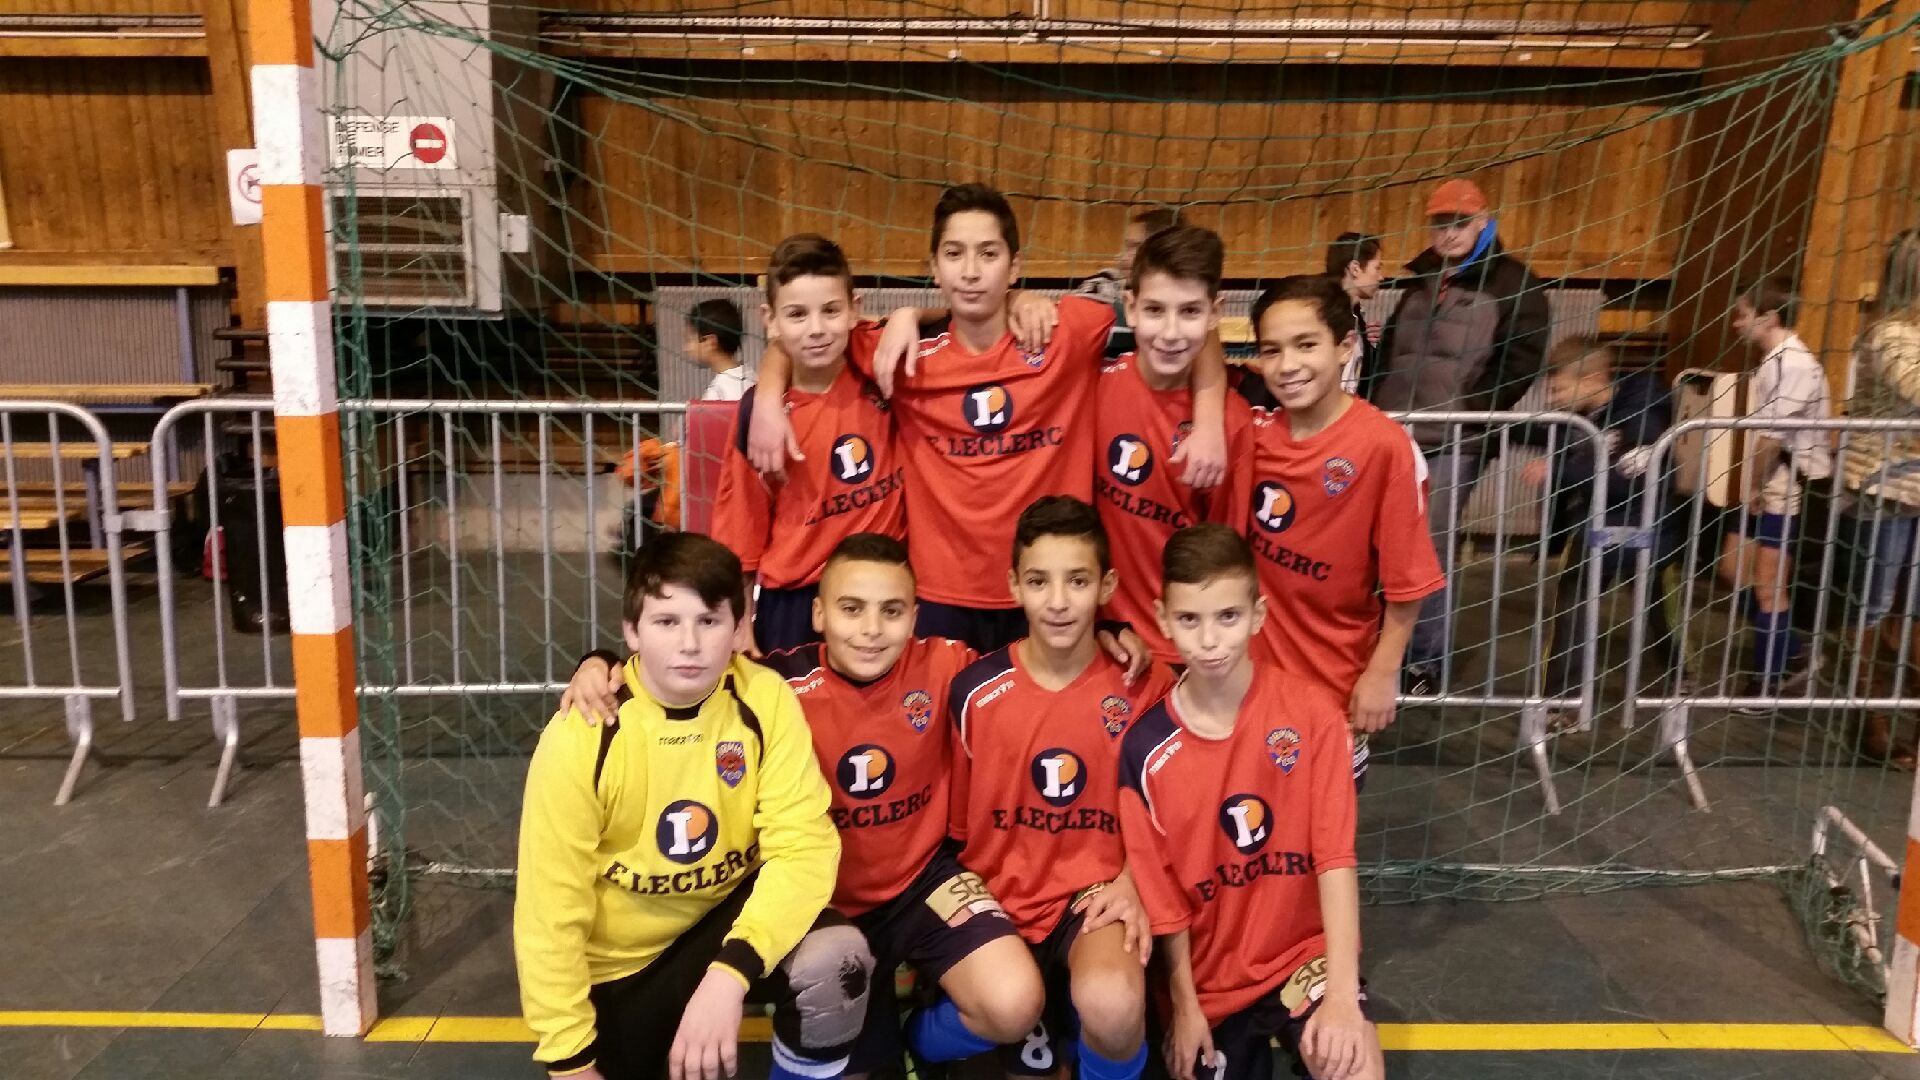 Tournoi du district de la Loire : Les U13 du FCOFI se qualifient pour la phase finale